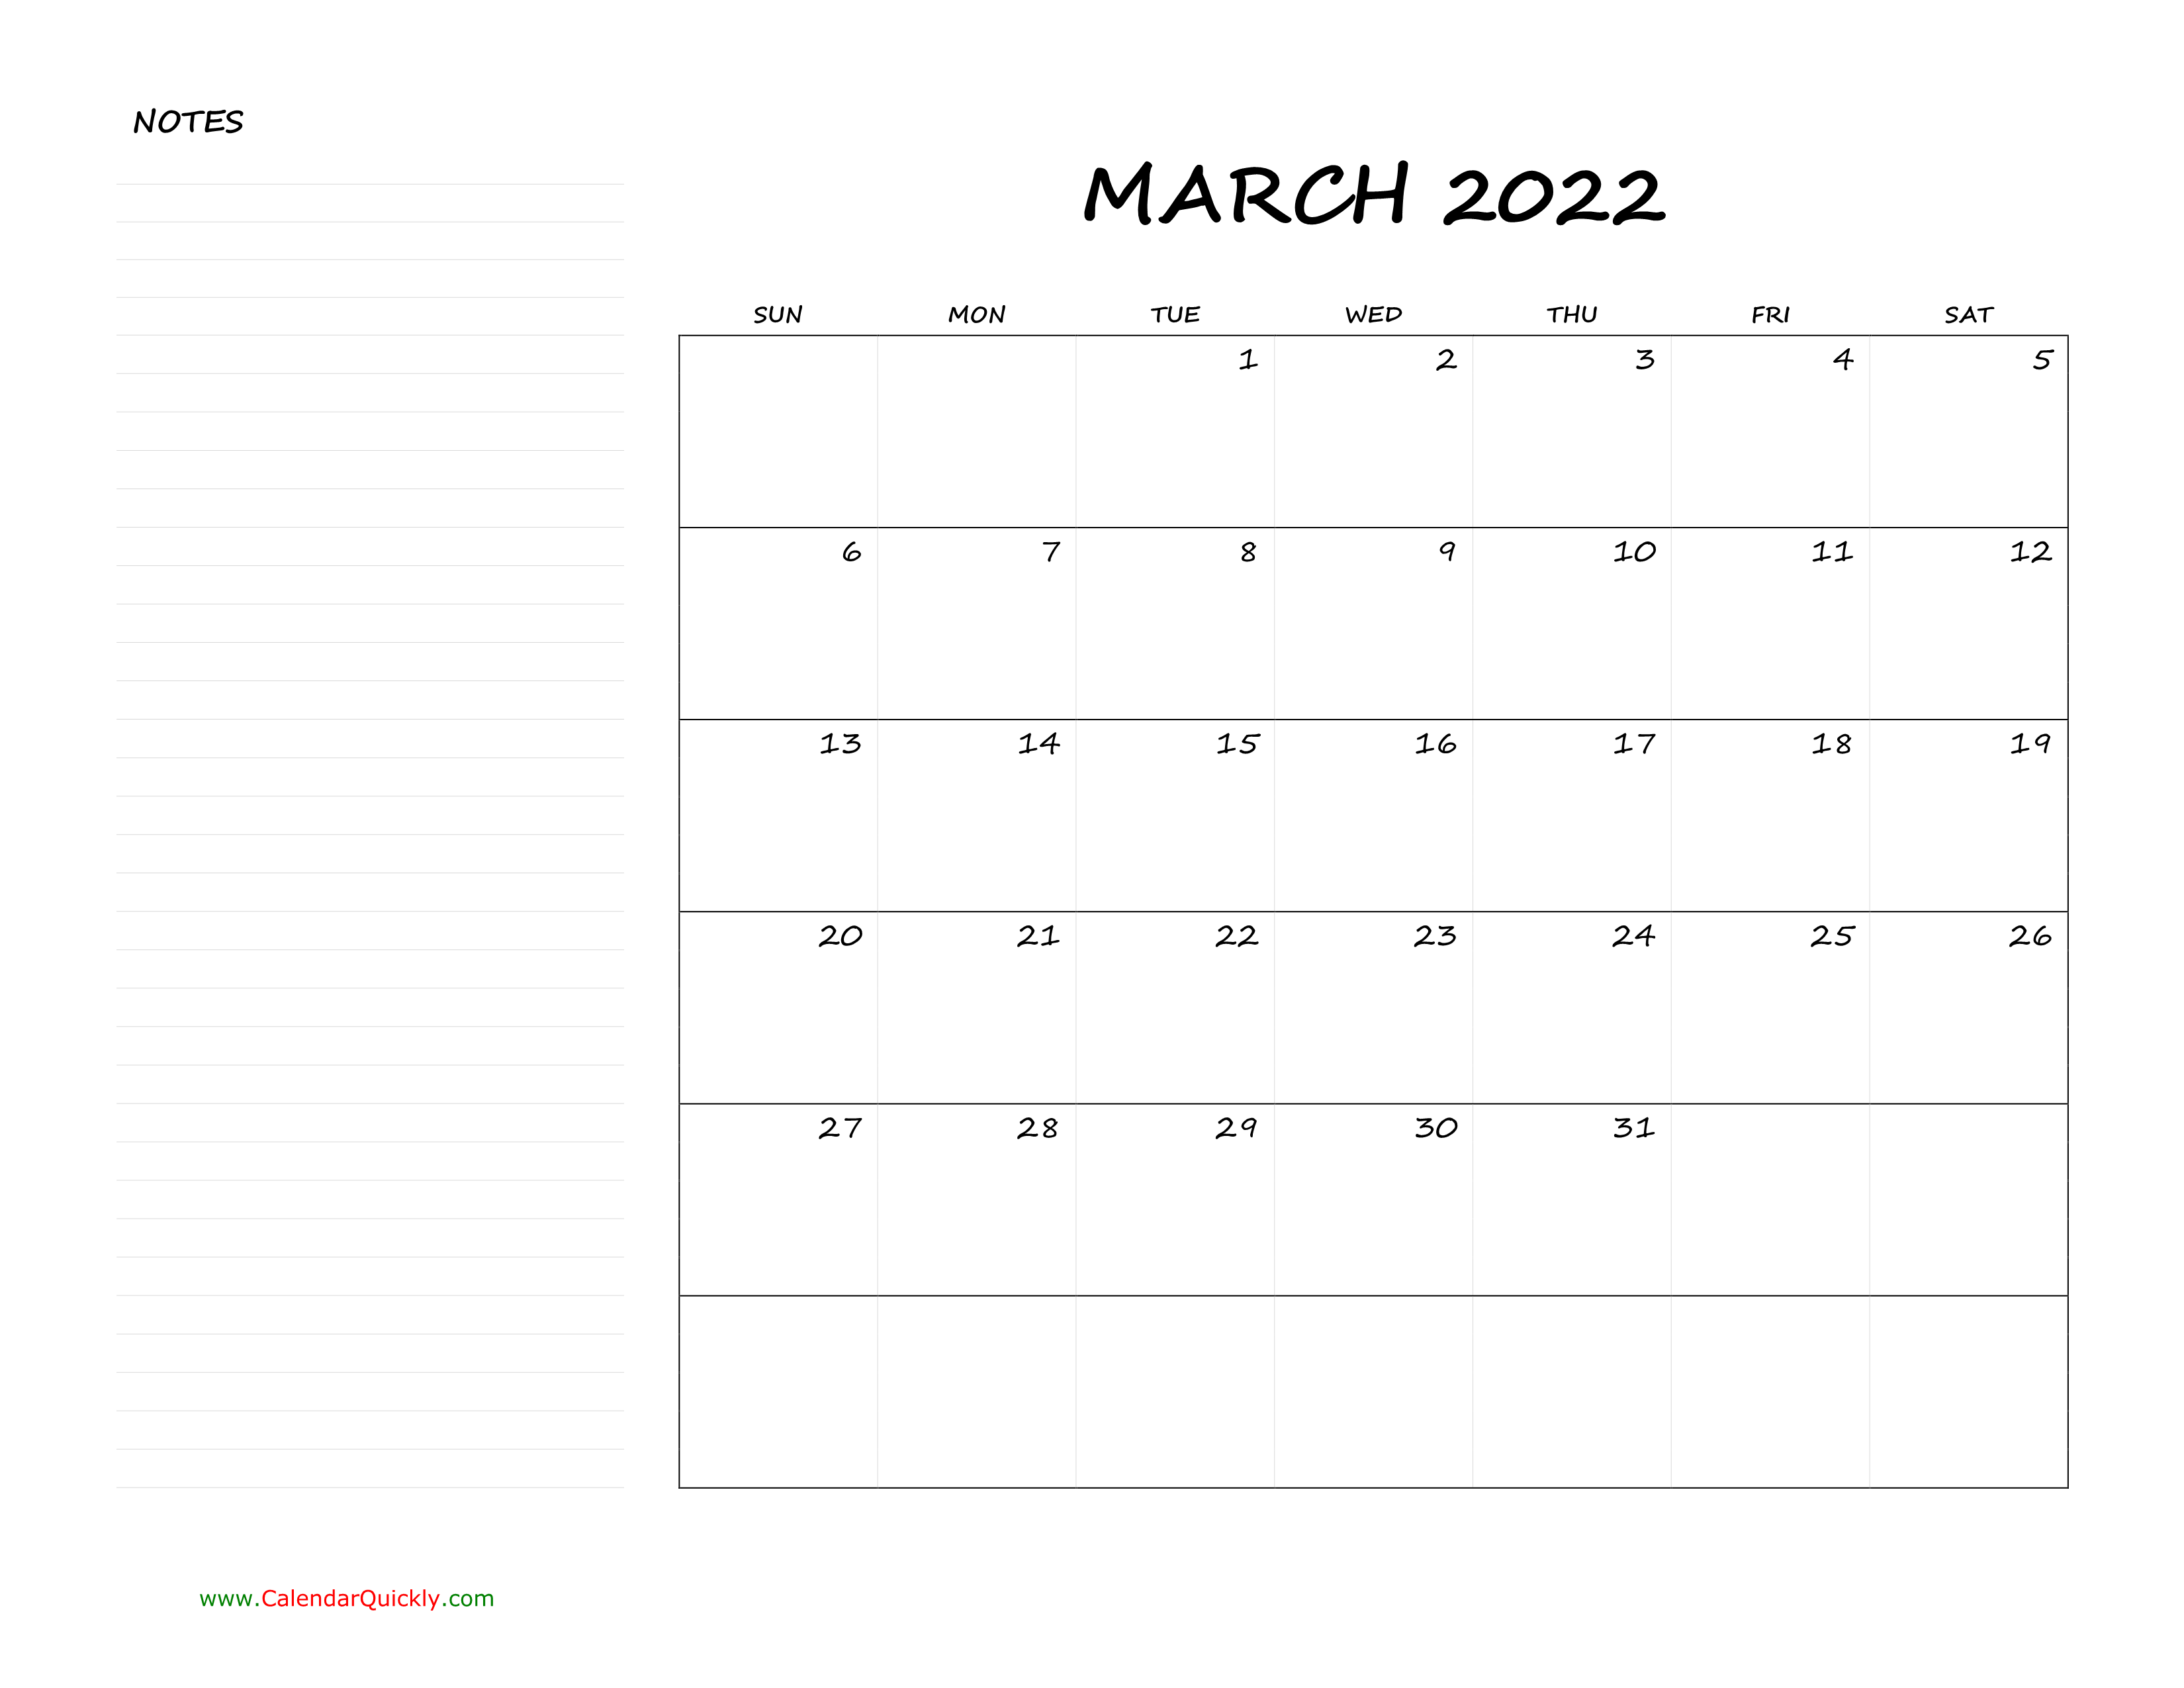 March Blank Calendar 2022 with Notes | Calendar Quickly